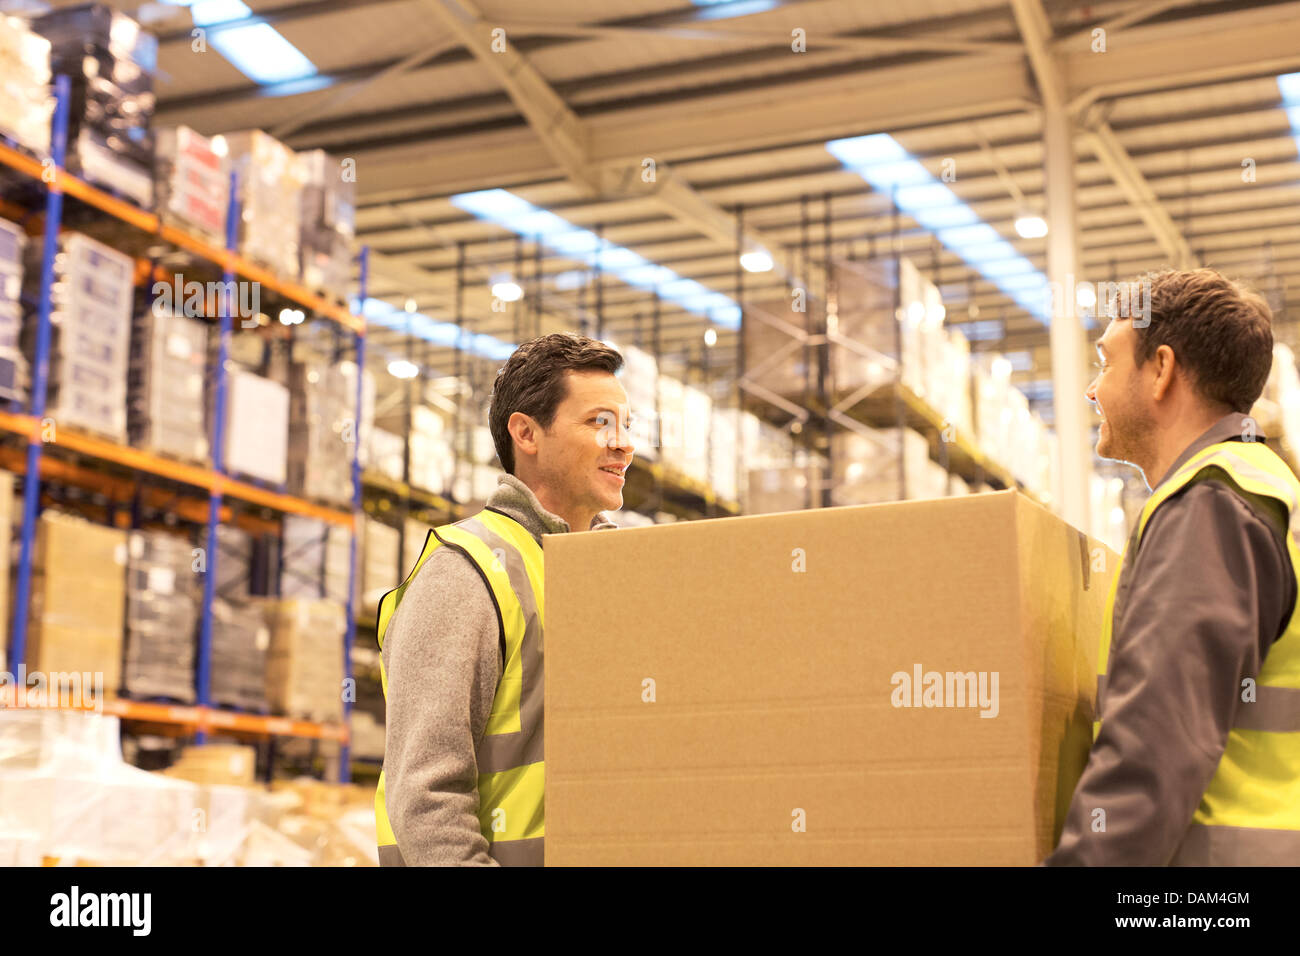 Workers carrying box in warehouse - Stock Image